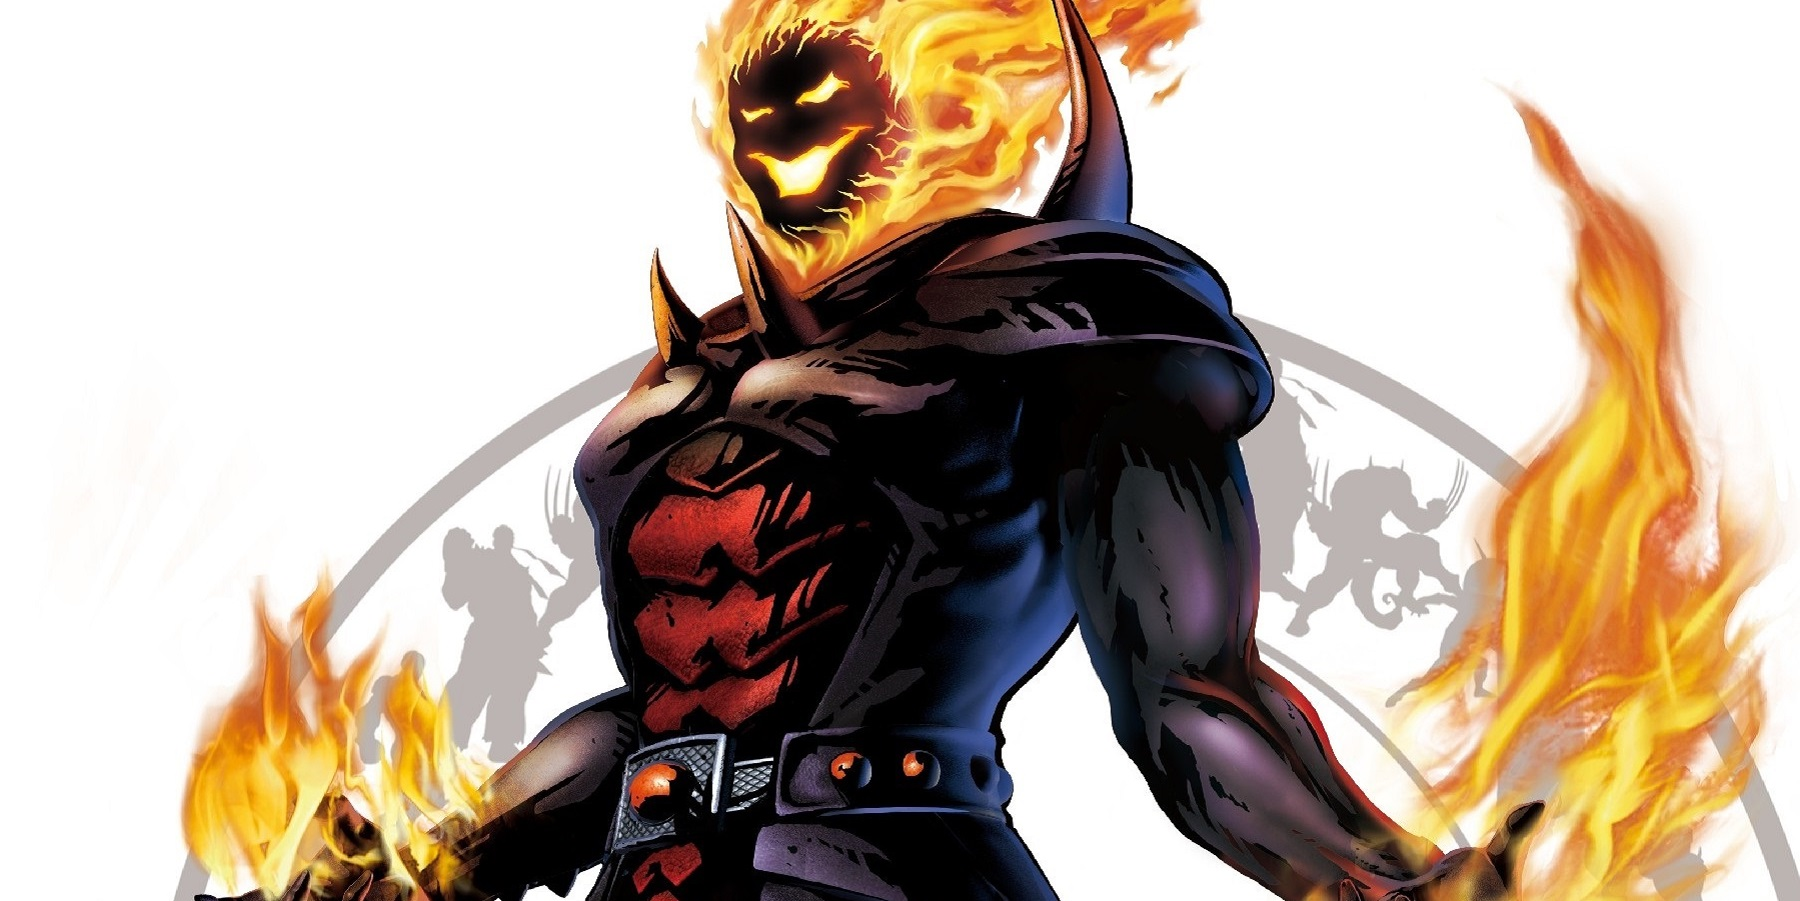 3. Dormammu. In the What If series, it is shown how Strange resorts to dark magic. He becomes so powerful as the disciple of Dormammu but loses his morals. This is one of the most dangerous versions. He even kills Mordo and frees the sister of his master. This is a dark version of Sorcerer Supreme.